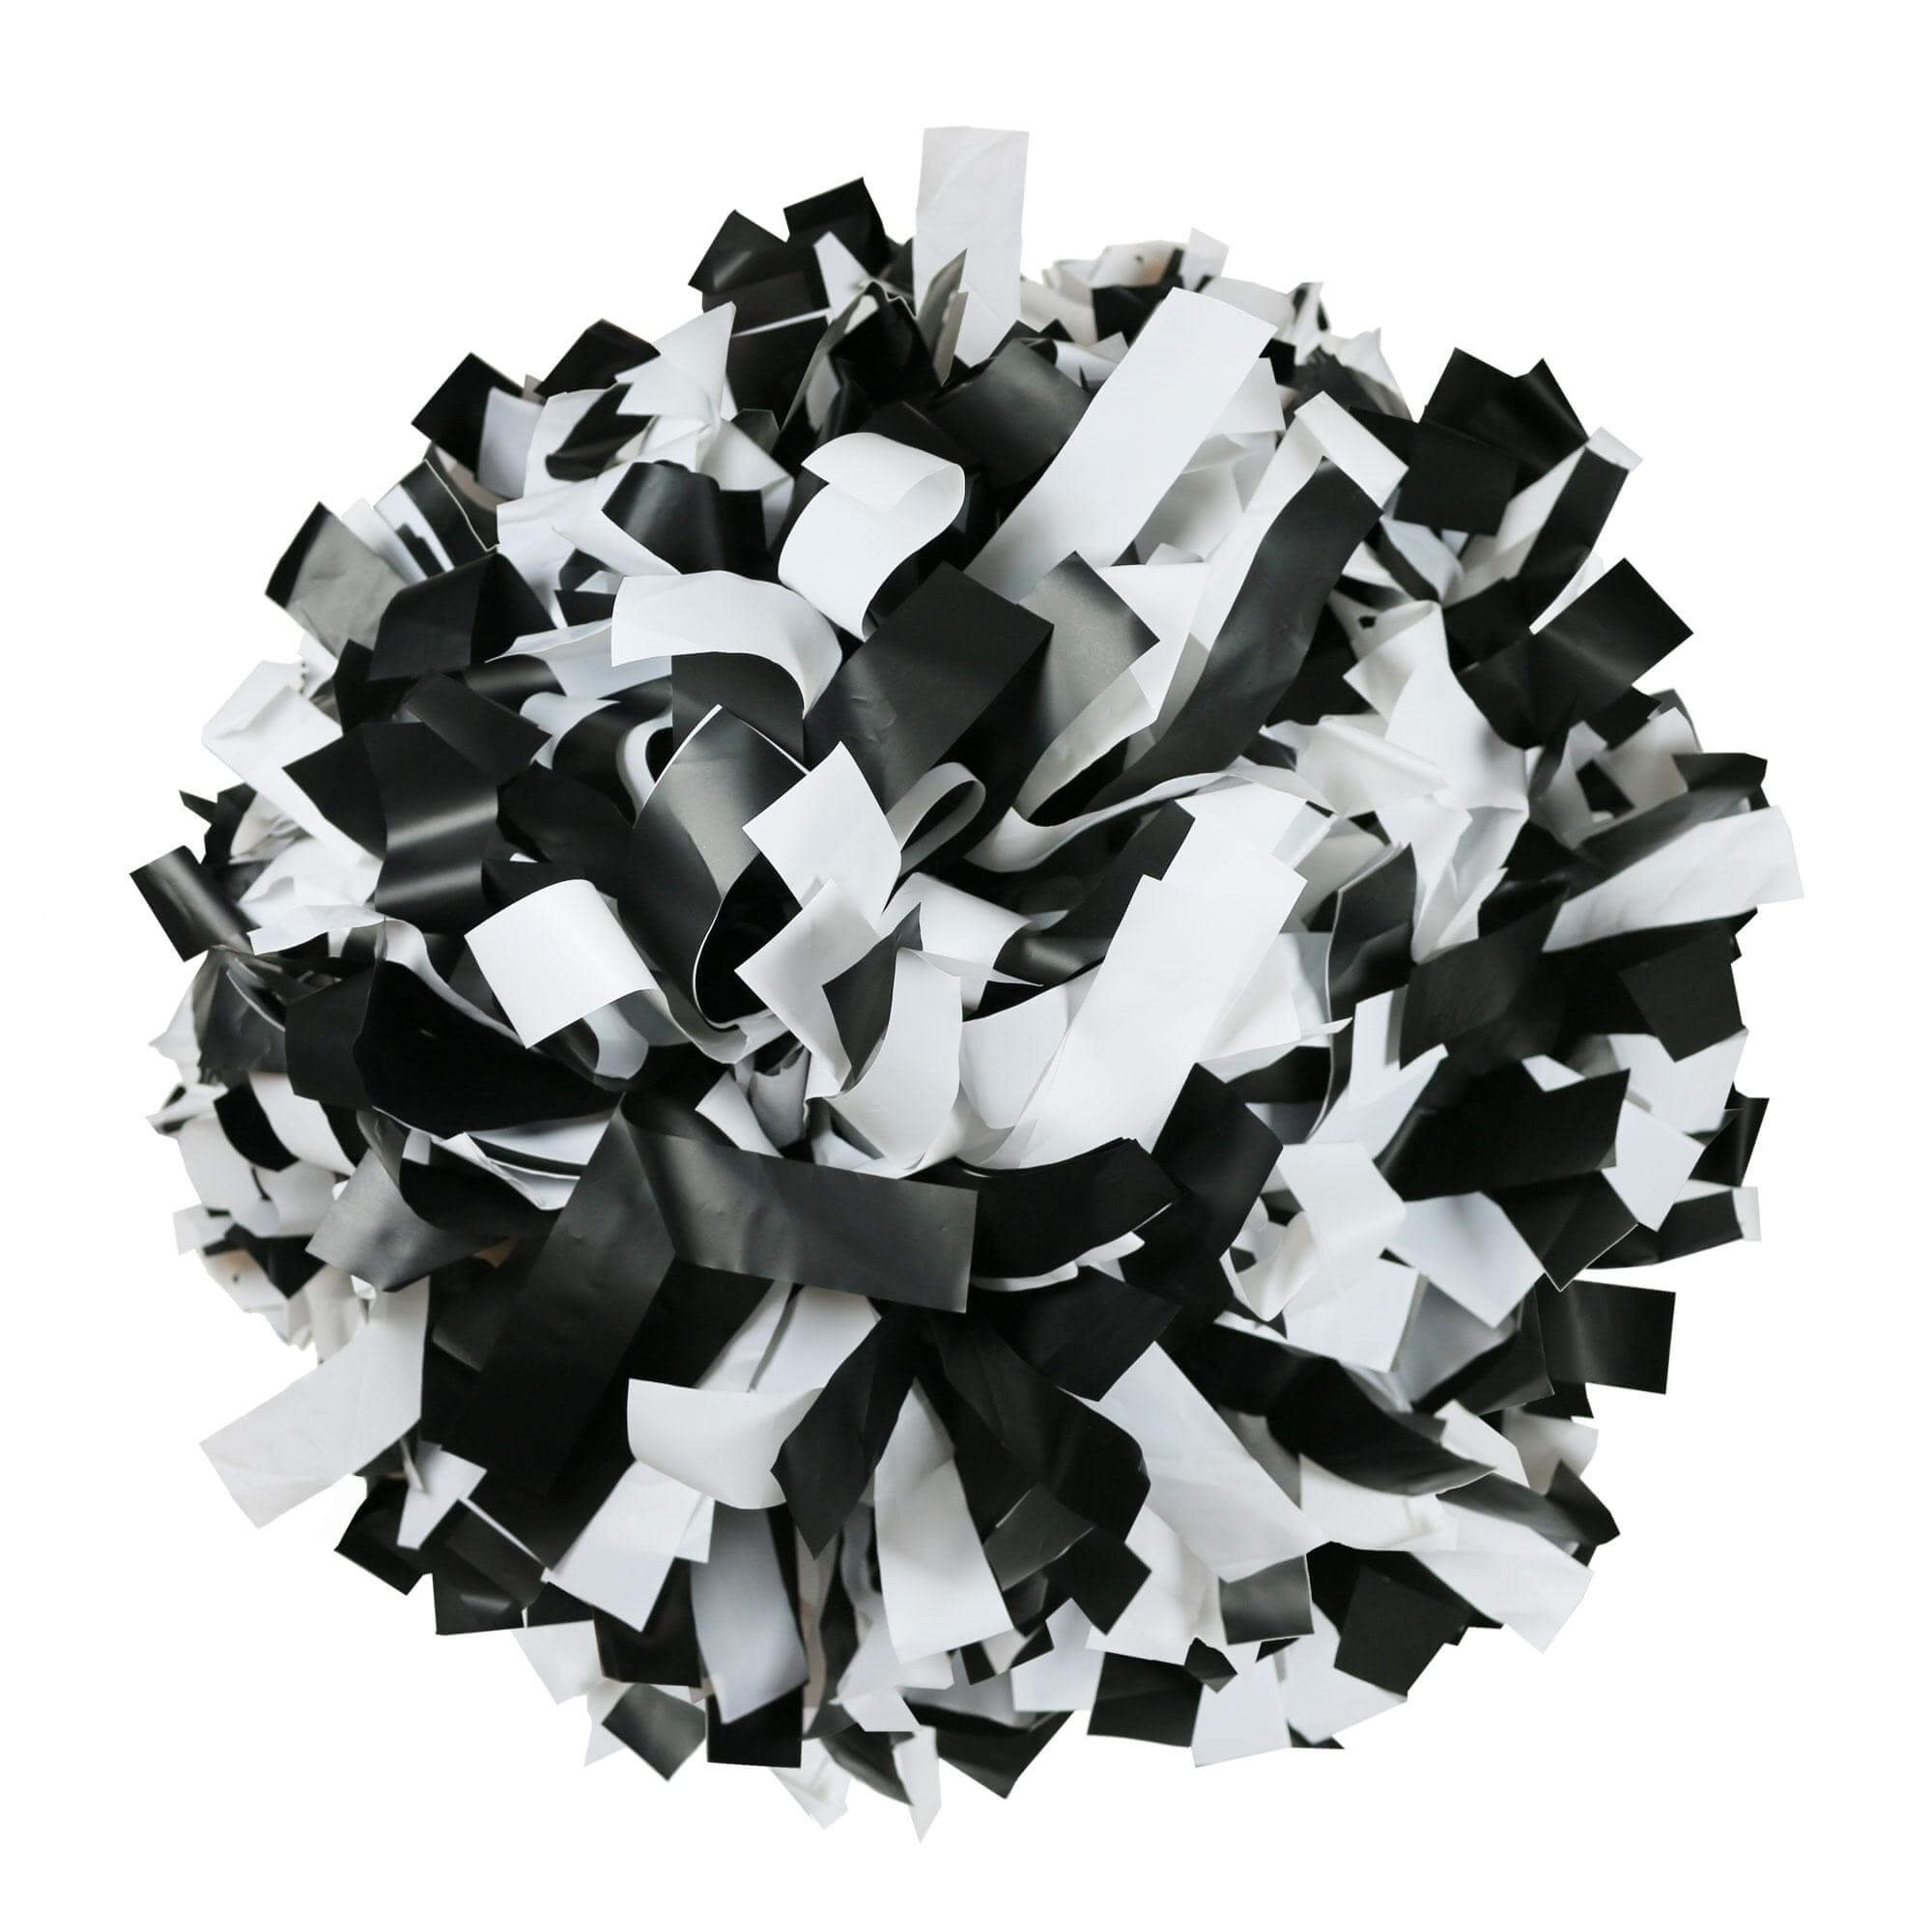 Danzcue Black/White Plastic Poms - One Pair